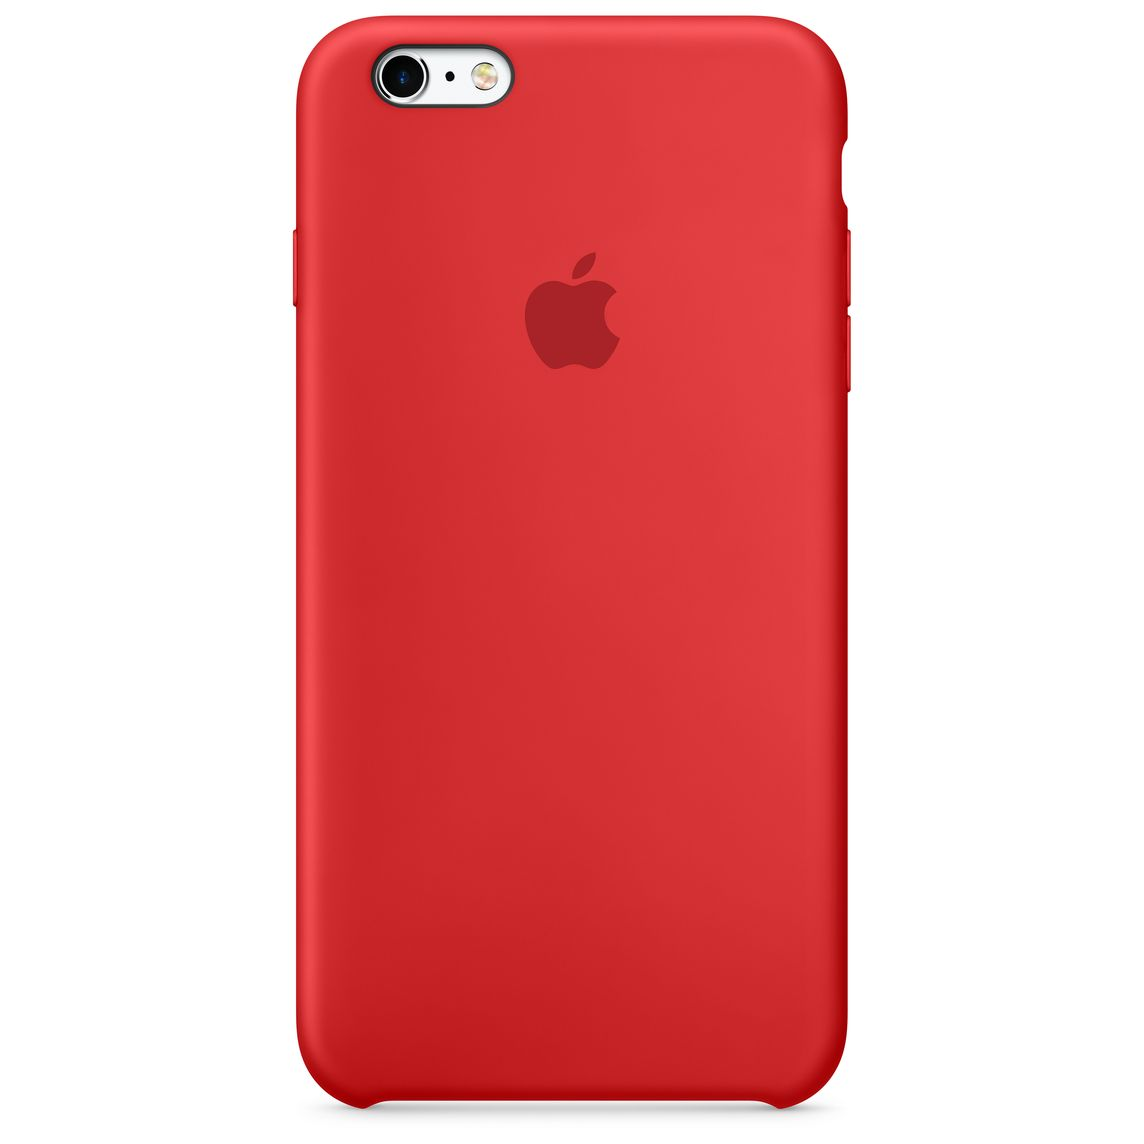 separation shoes 44bf6 ded35 iPhone 6 Plus / 6s Plus Silicone Case - (PRODUCT)RED